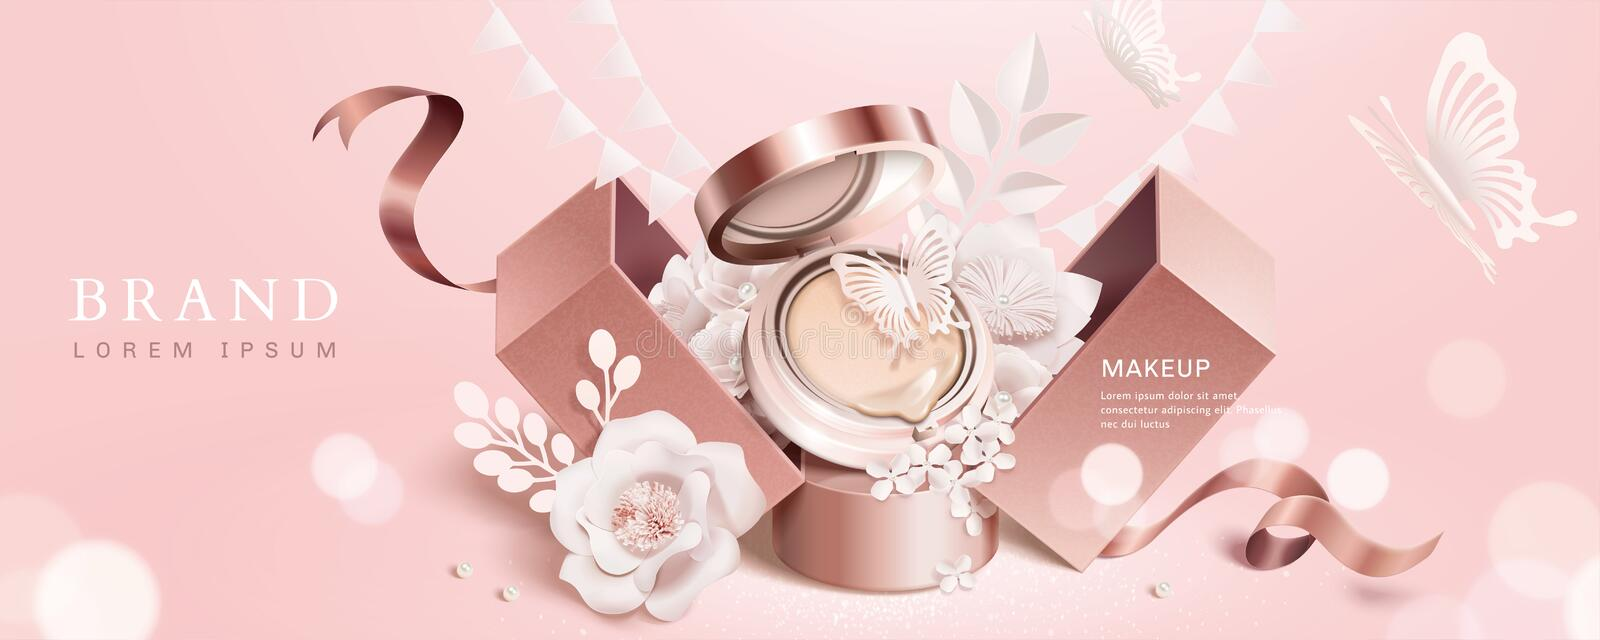 Cushion compact banner ads. Cushion compact shows up from gift box with paper flowers on light pink background, cosmetic banner ads royalty free illustration